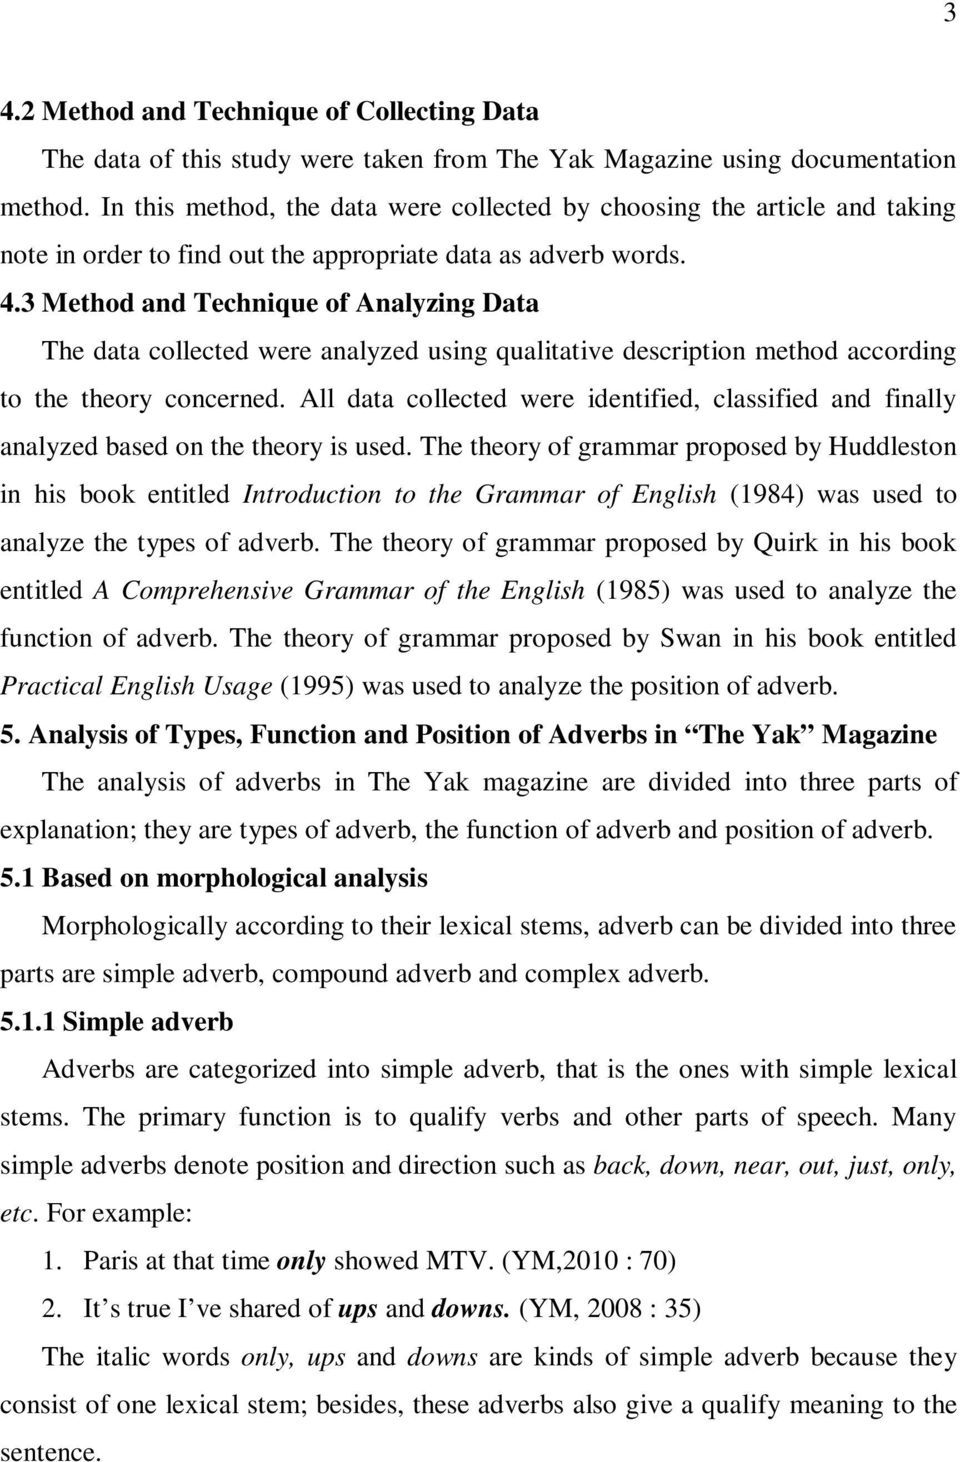 3 Method and Technique of Analyzing Data The data collected were analyzed using qualitative description method according to the theory concerned.